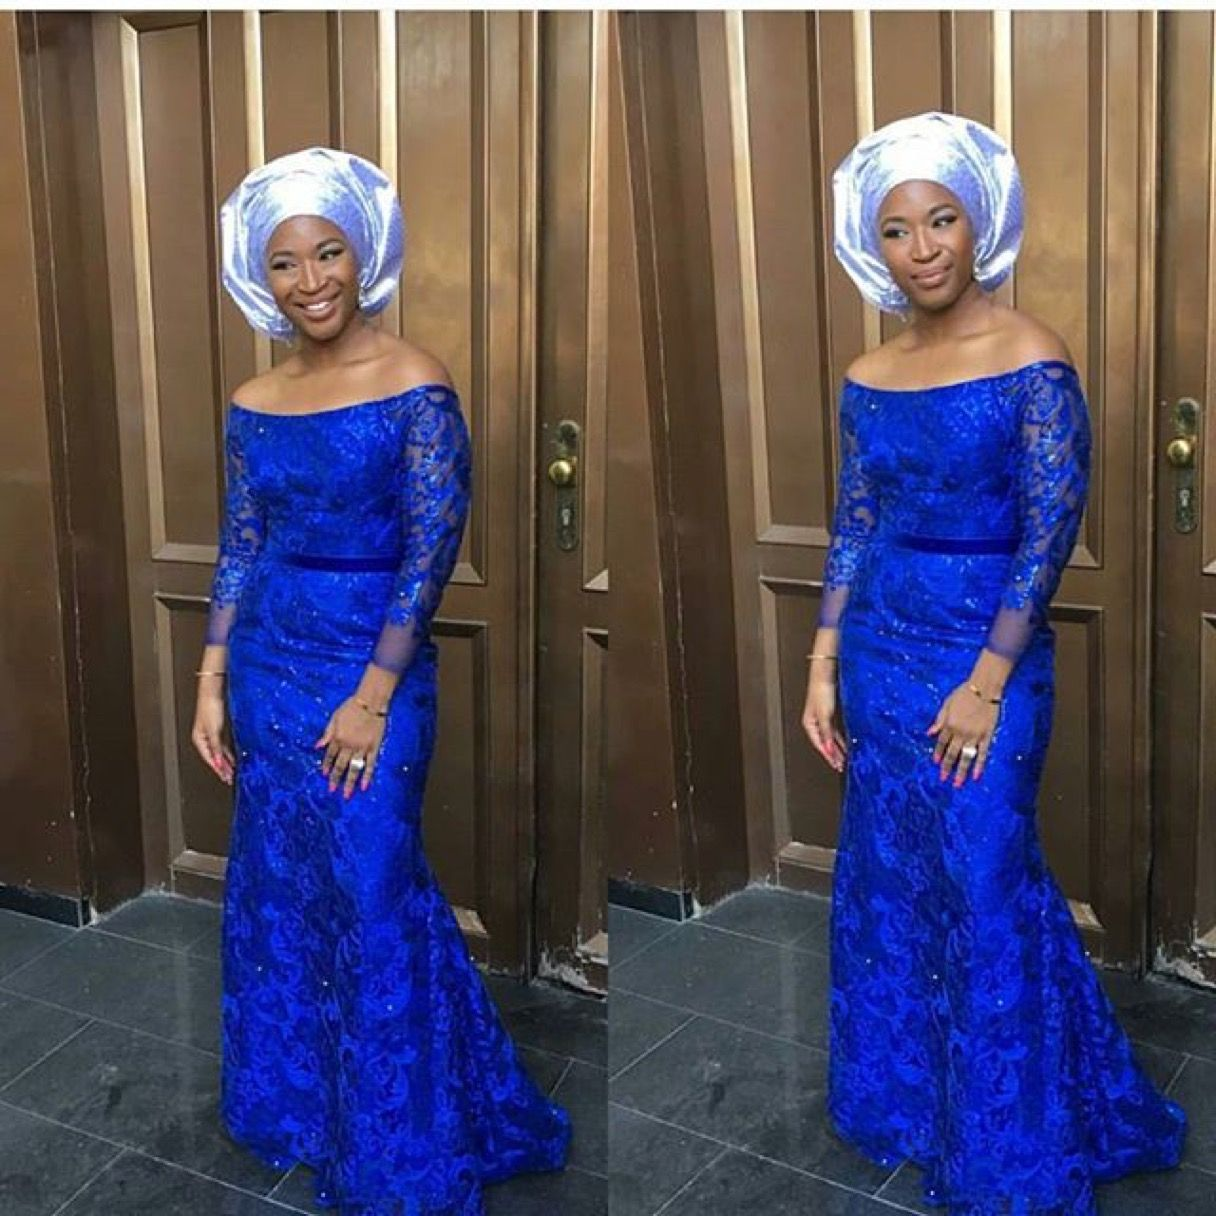 Lace dress nigeria  Pin by Aletha Harris on My kind of look  Pinterest  Africans Aso